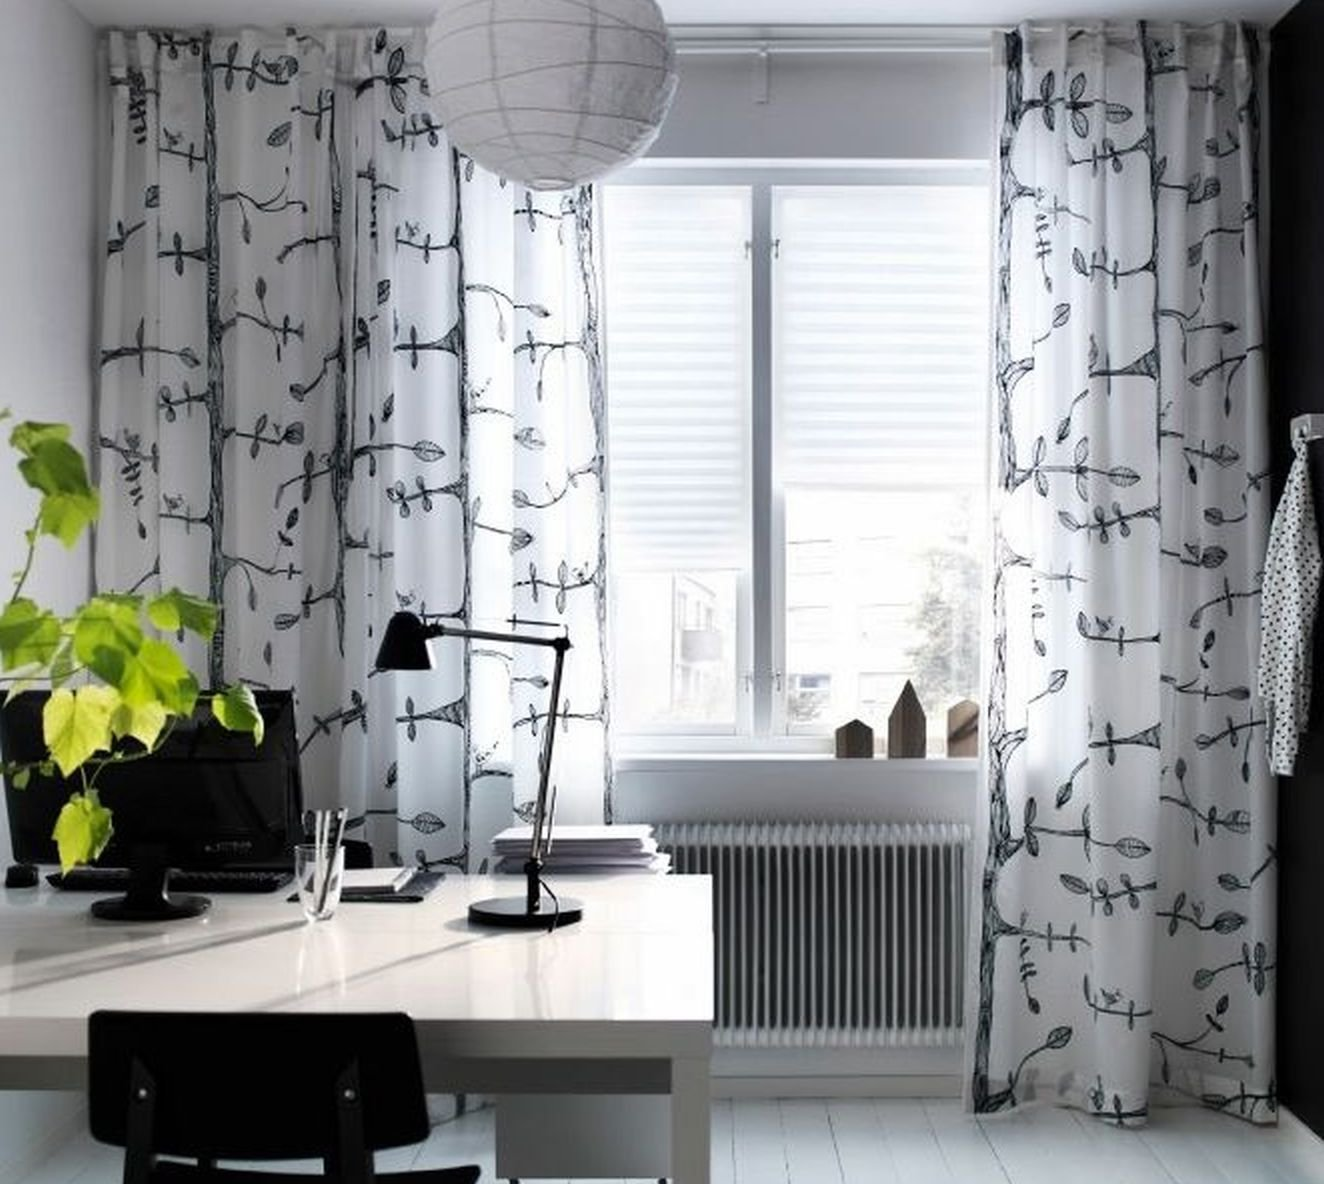 ikea eivor curtains drapes white black bird leaf garden design. Black Bedroom Furniture Sets. Home Design Ideas